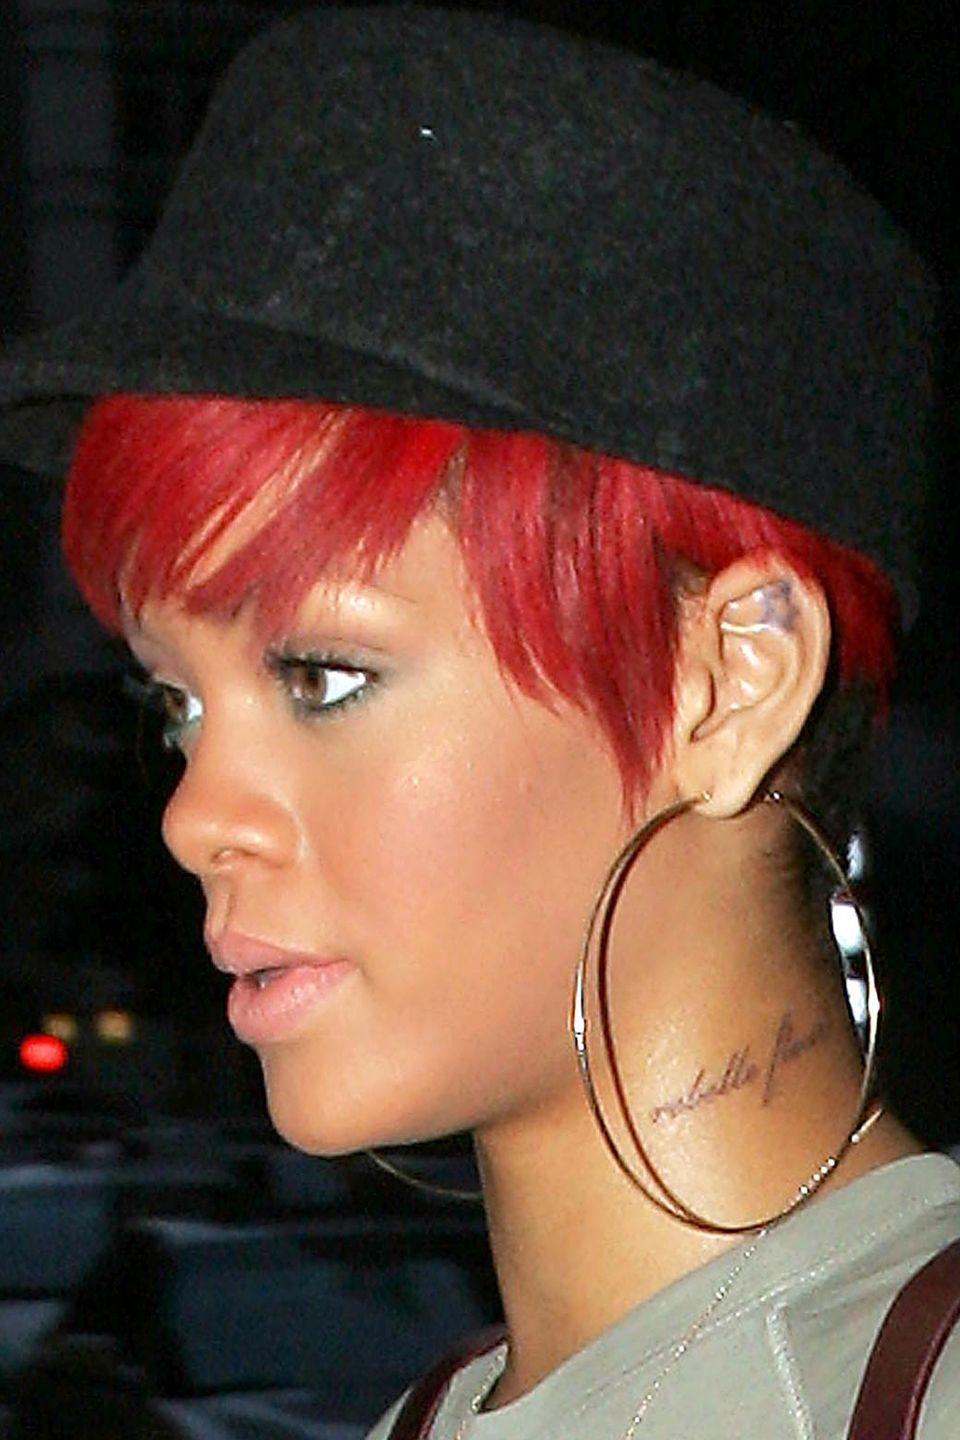 """<p>Rihanna wanted the phrase """"<a href=""""https://www.bustle.com/articles/146118-11-celebrities-with-tattoos-that-have-mistakes-photos"""" rel=""""nofollow noopener"""" target=""""_blank"""" data-ylk=""""slk:rebellious flower"""" class=""""link rapid-noclick-resp"""">rebellious flower</a>,"""" inked in French on her neck—but unfortunately, she must not have realized that the noun goes <em>before</em> the adjective in that language. The words """"rebelle fleur,"""" actually mean """"flower rebel."""" <br></p>"""